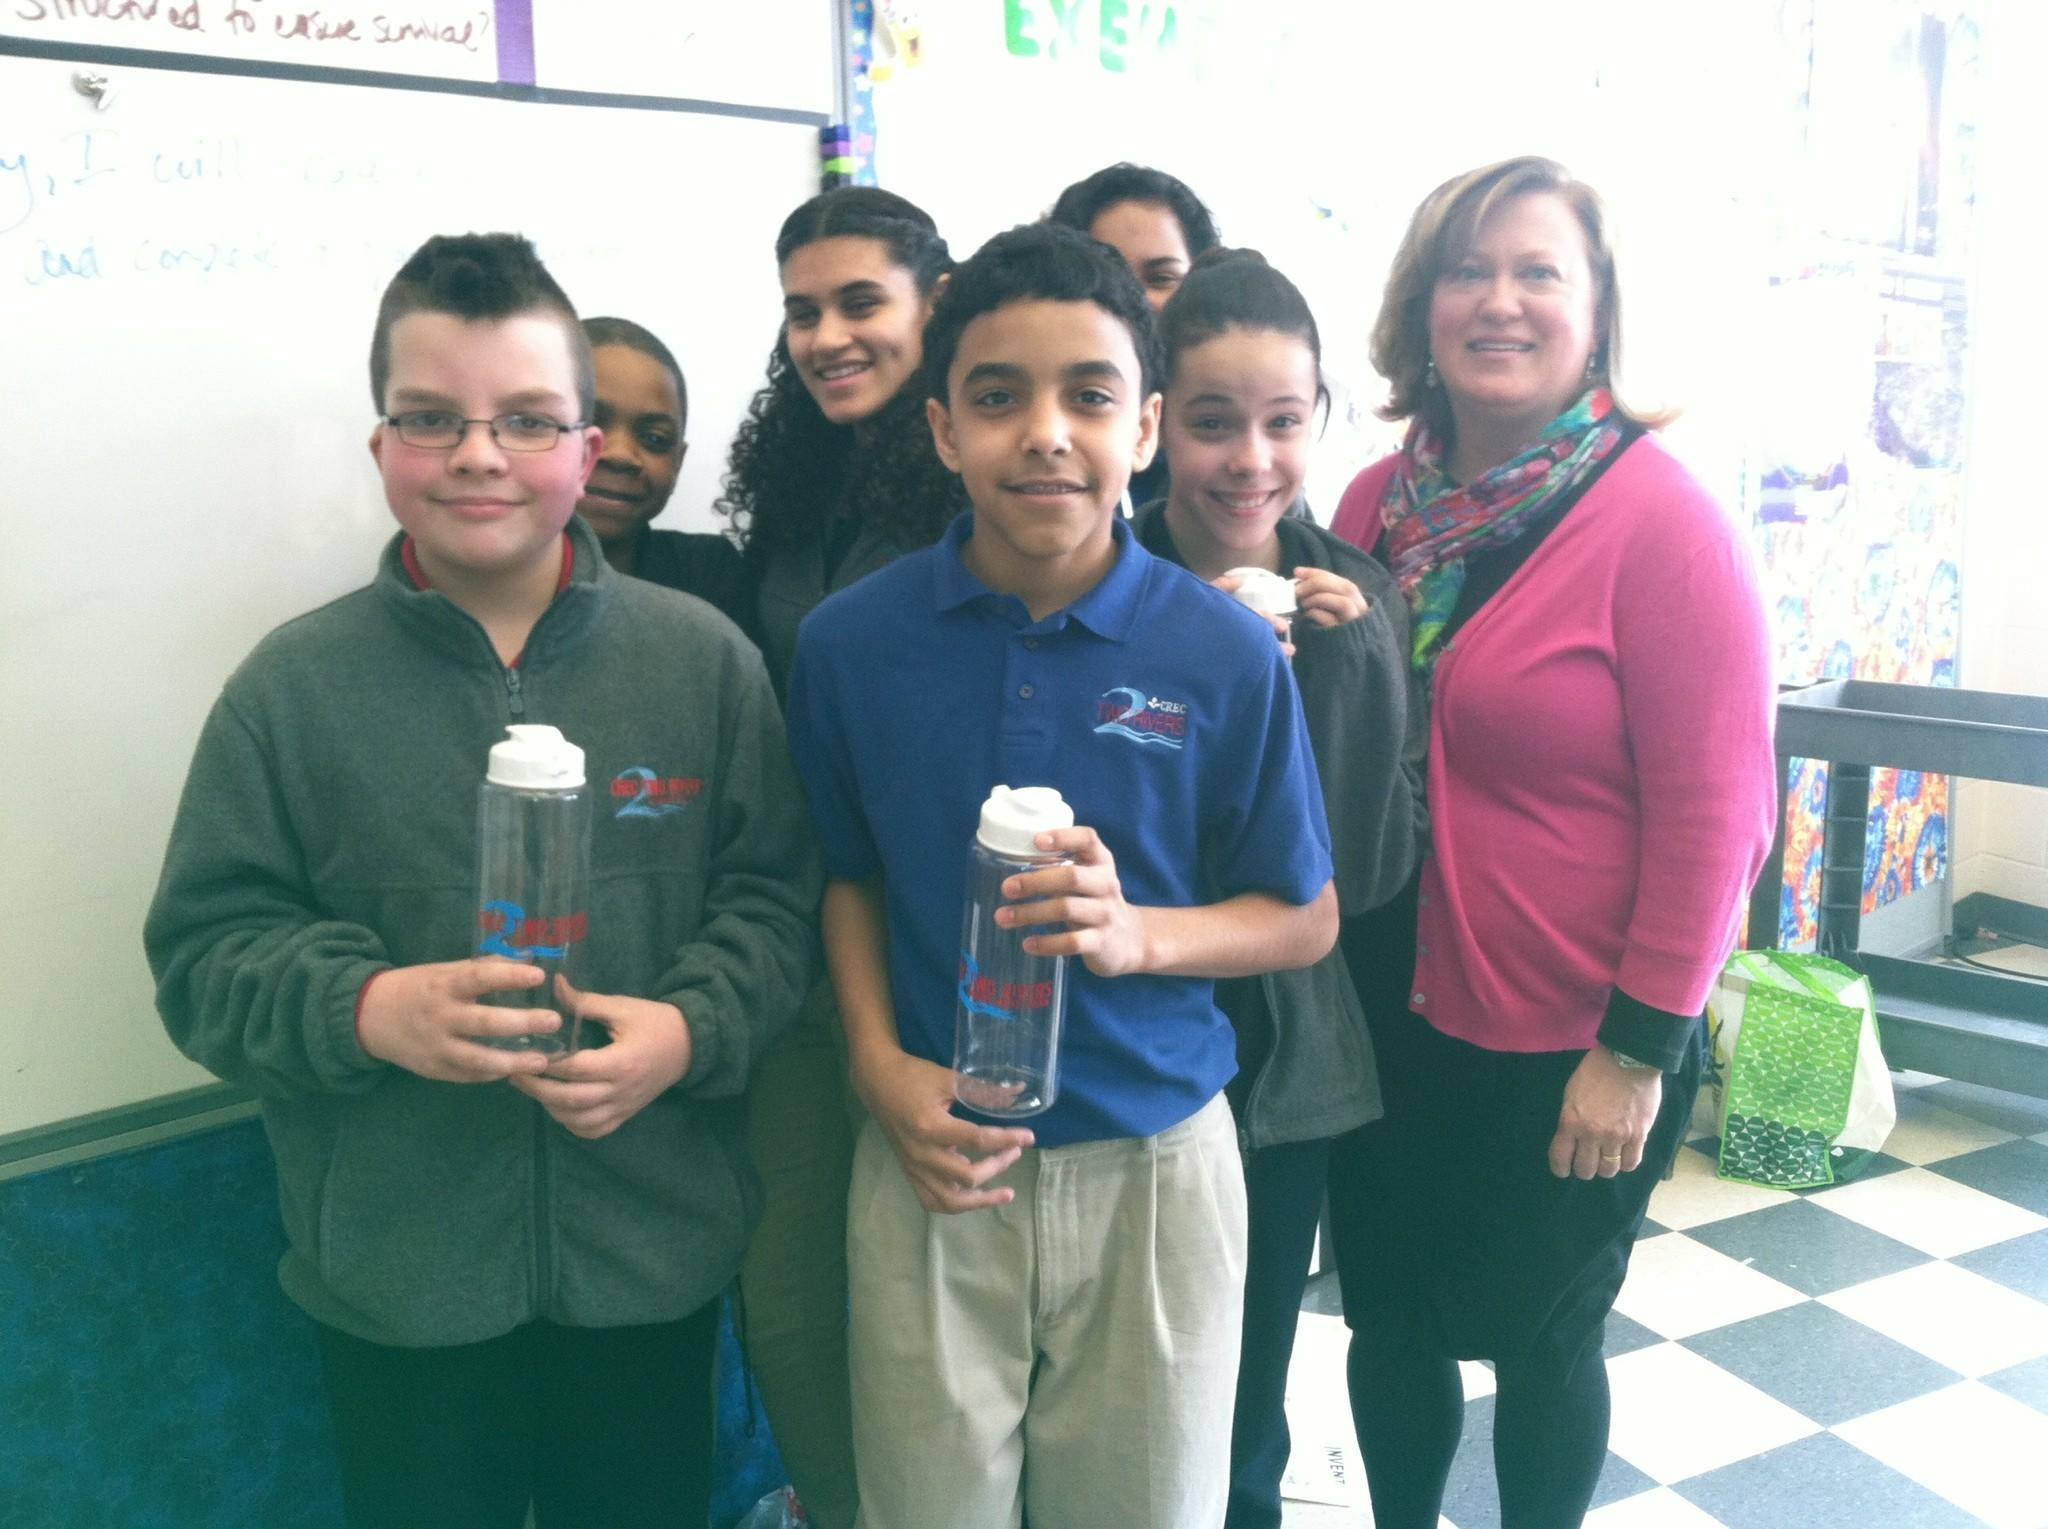 Students at the CREC Two Rivers Middle School are selling reusable water bottles to help fund a well through the Save the Children foundation.